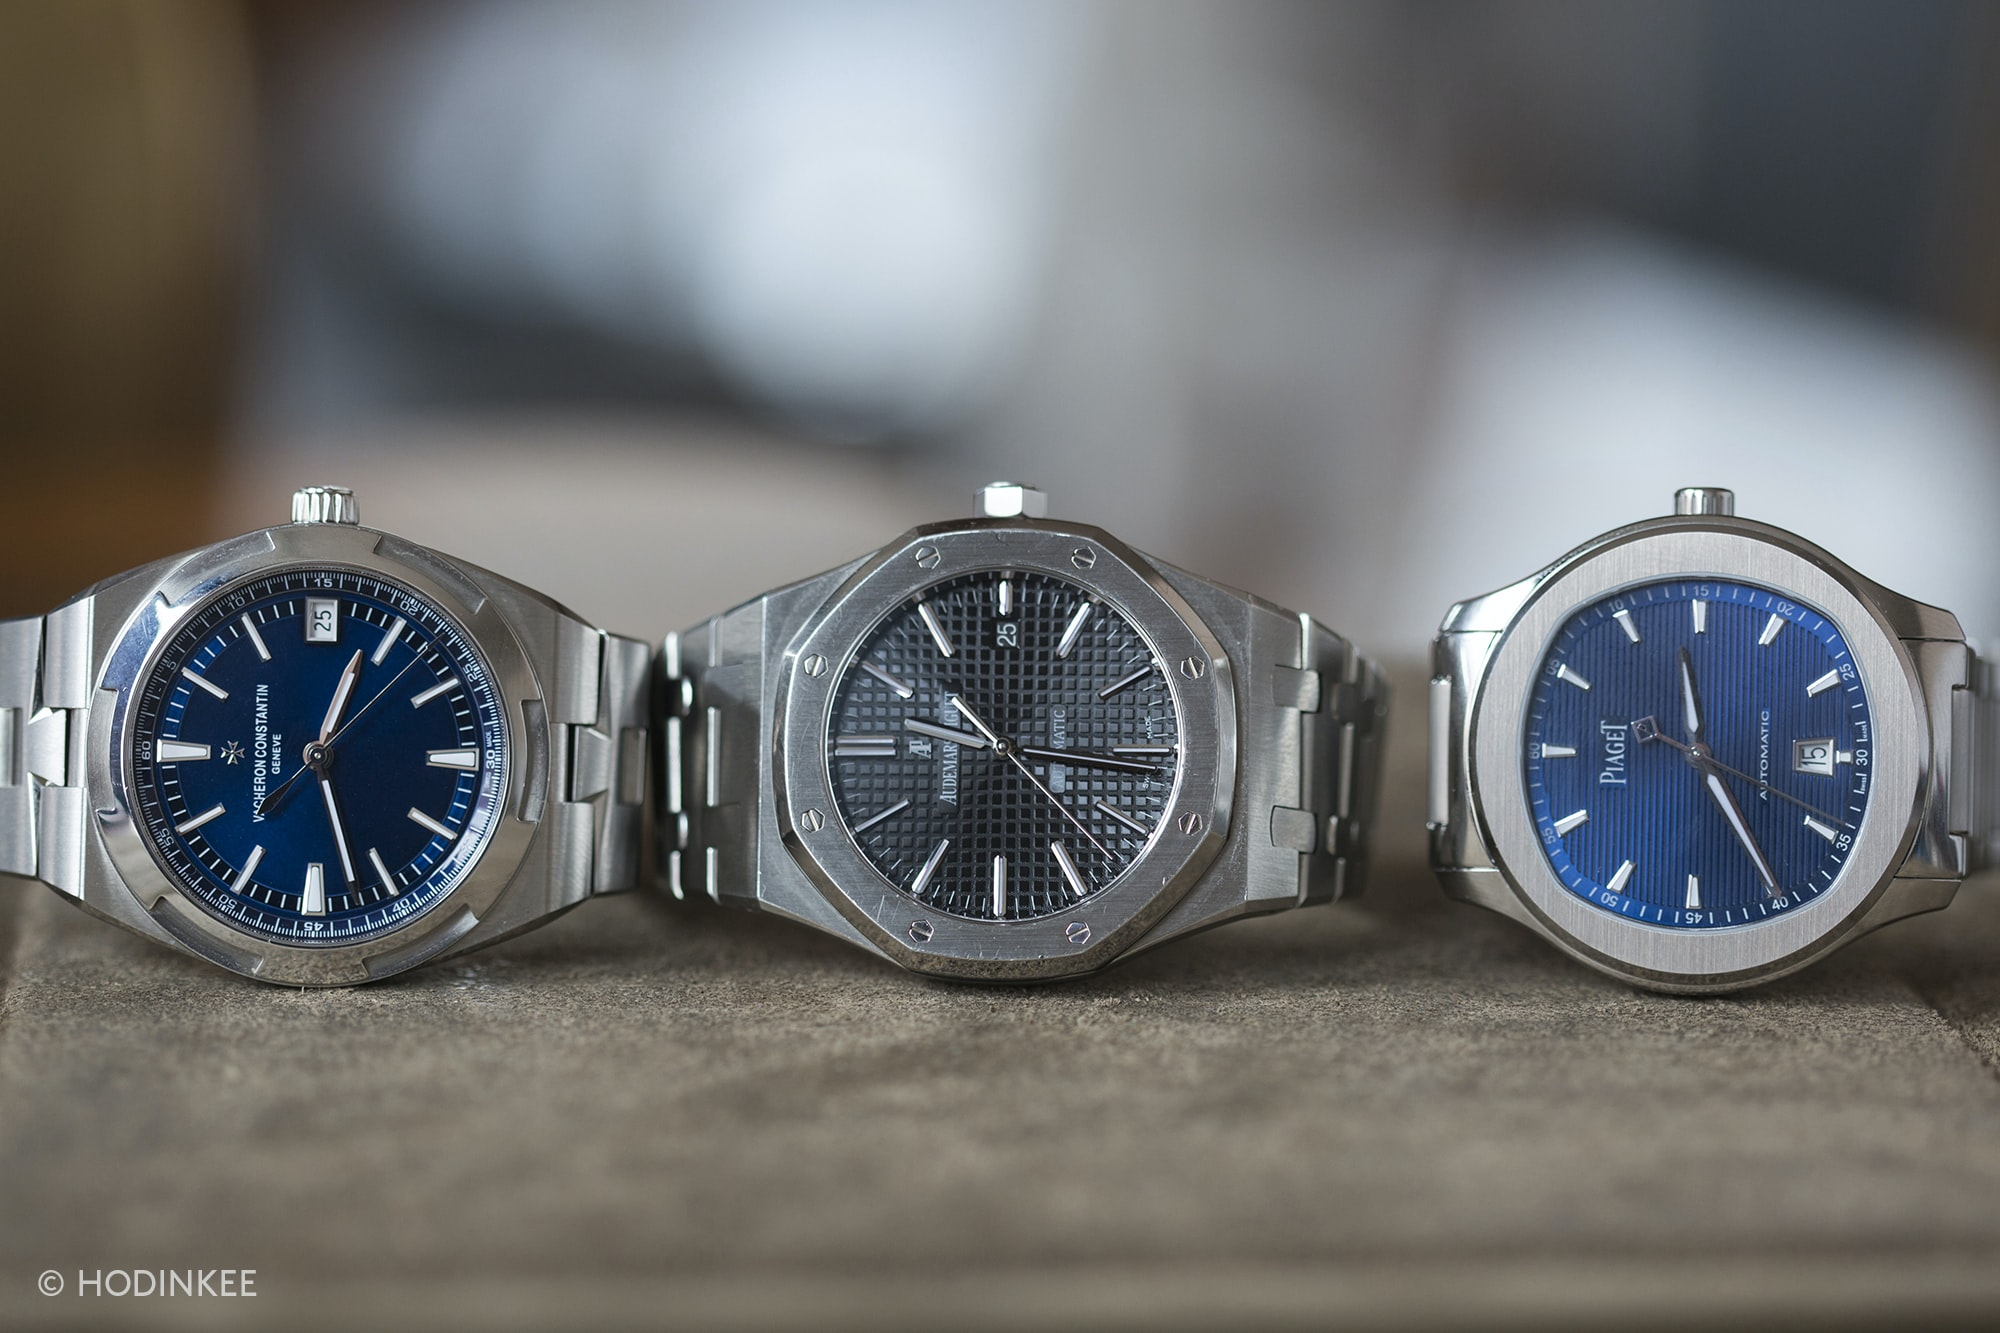 Three On Three: Comparing The Vacheron Constantin Overseas, The Piaget Polo S, And The Audemars Piguet Royal Oak 15400 Three On Three: Comparing The Vacheron Constantin Overseas, The Piaget Polo S, And The Audemars Piguet Royal Oak 15400 20012687 copy